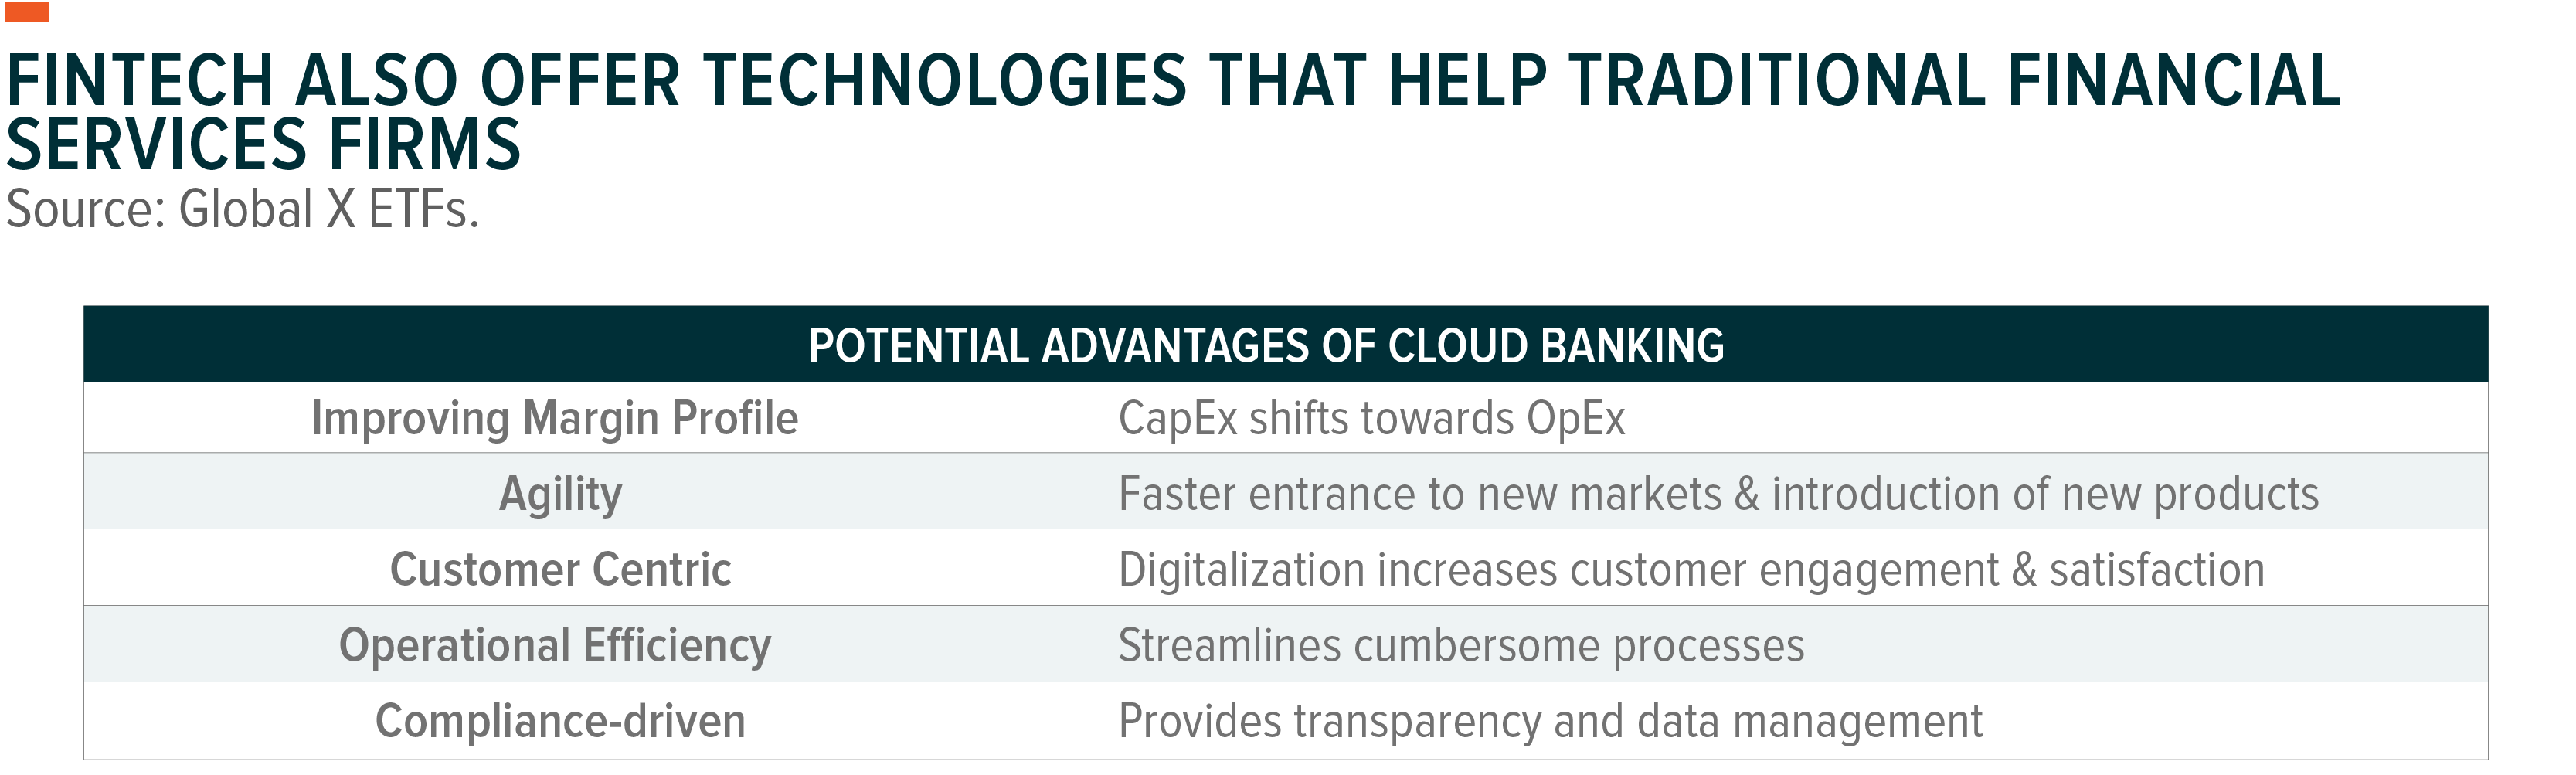 FinTech Offer Technologies That Help Traditional Financial Services Firms